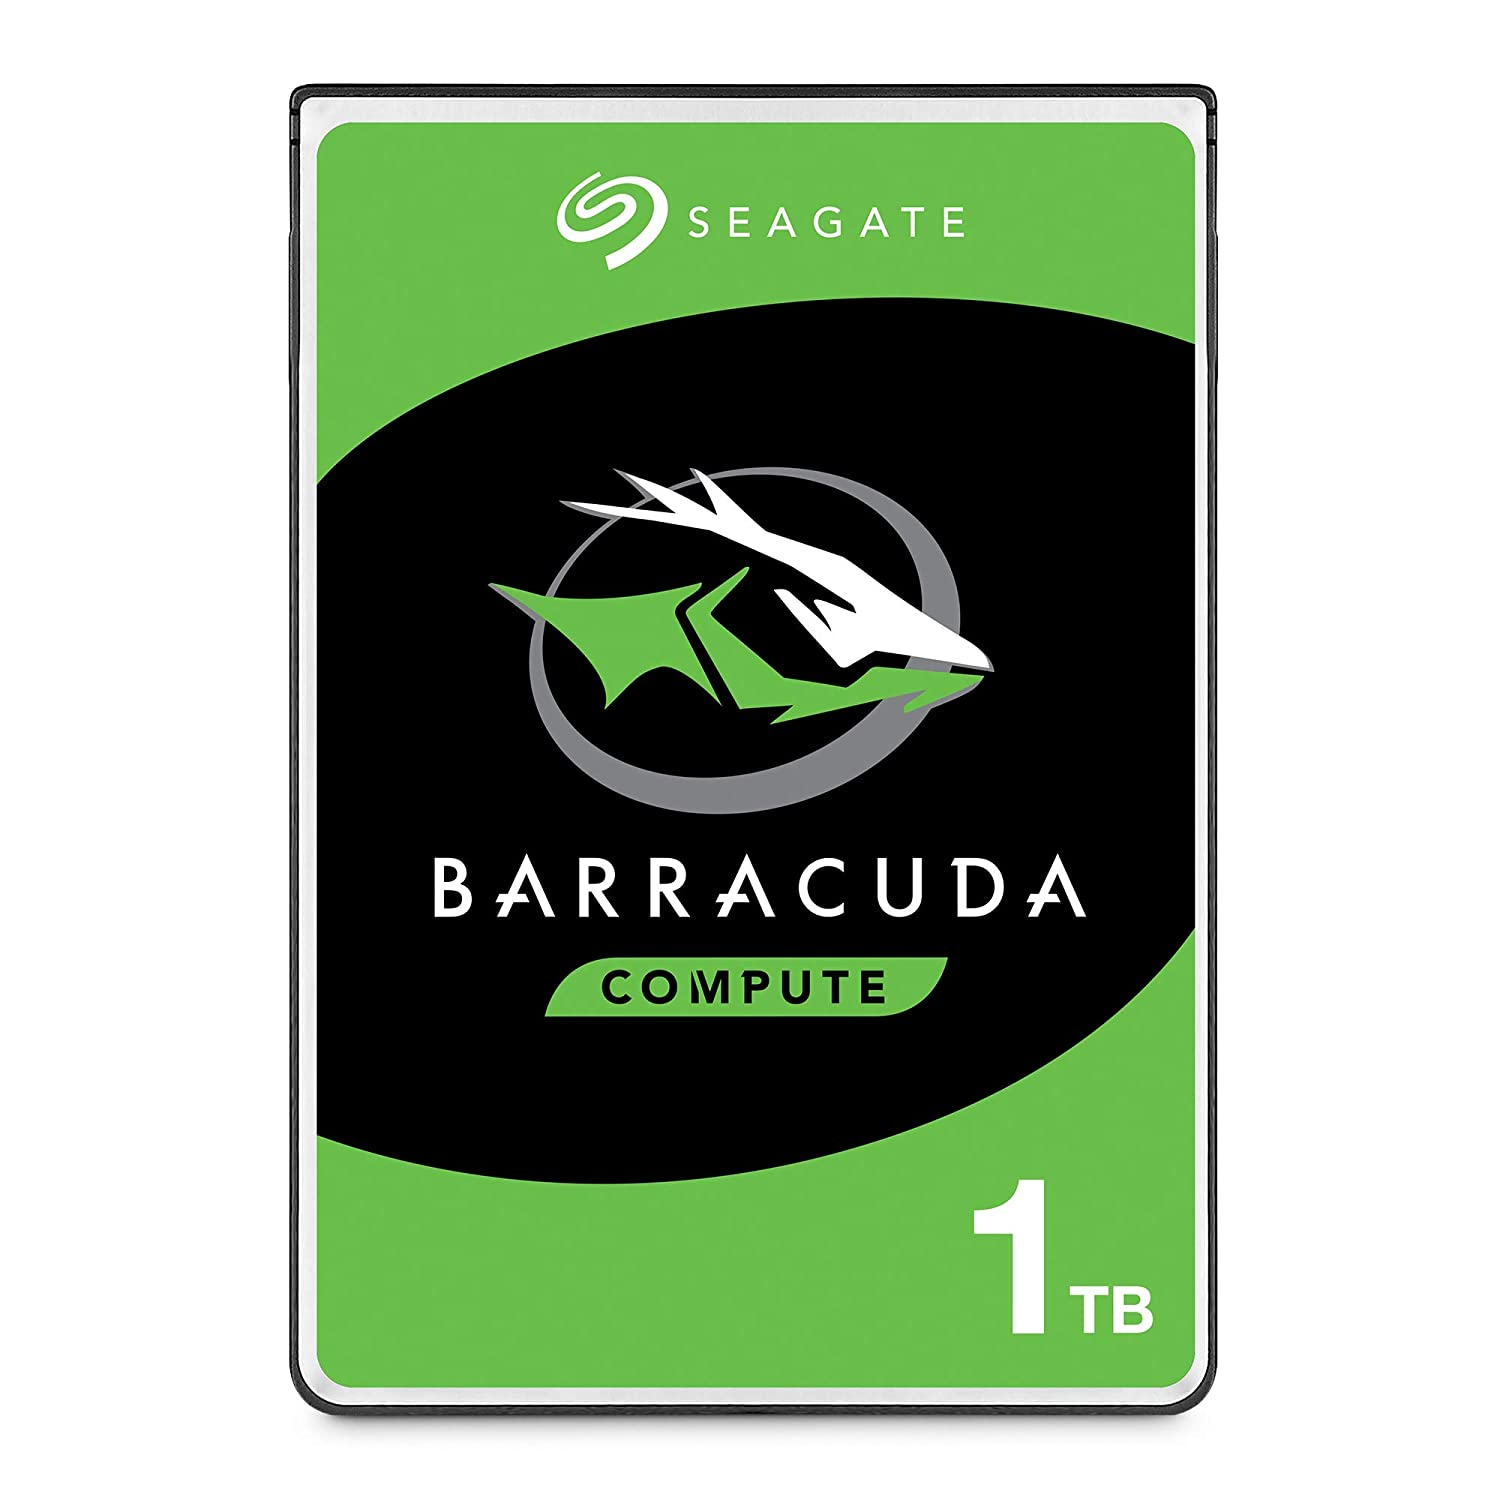 Seagate BarraCuda 1TB Internal Hard Drive HDD – 2 5 Inch SATA 6 Gb/s 5400  RPM 128MB Cache for PC Laptop (ST1000LM048)